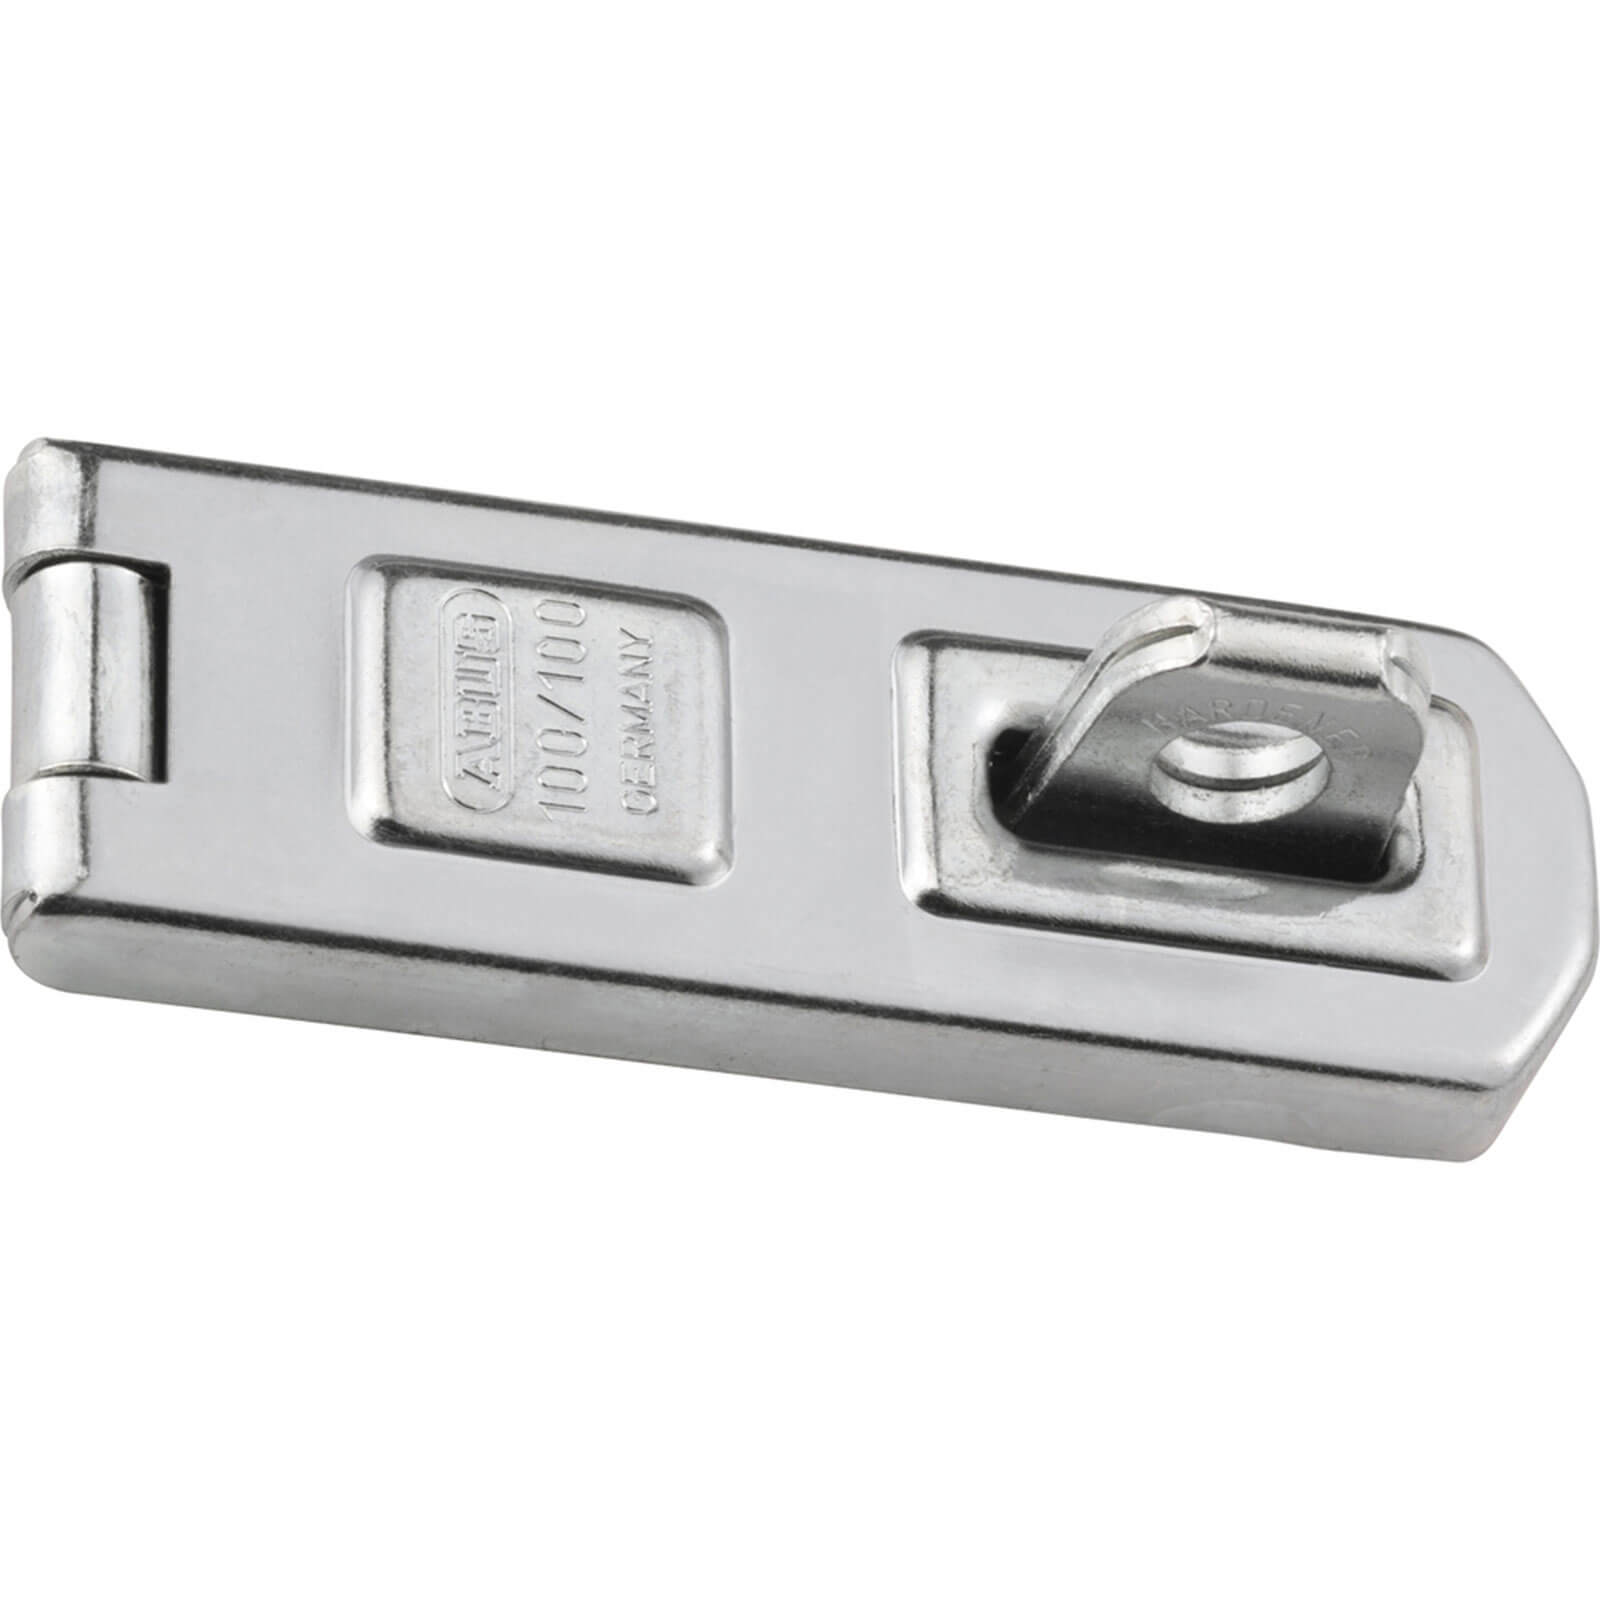 Abus 100 Series Tradition Hasp & Staple 100mm